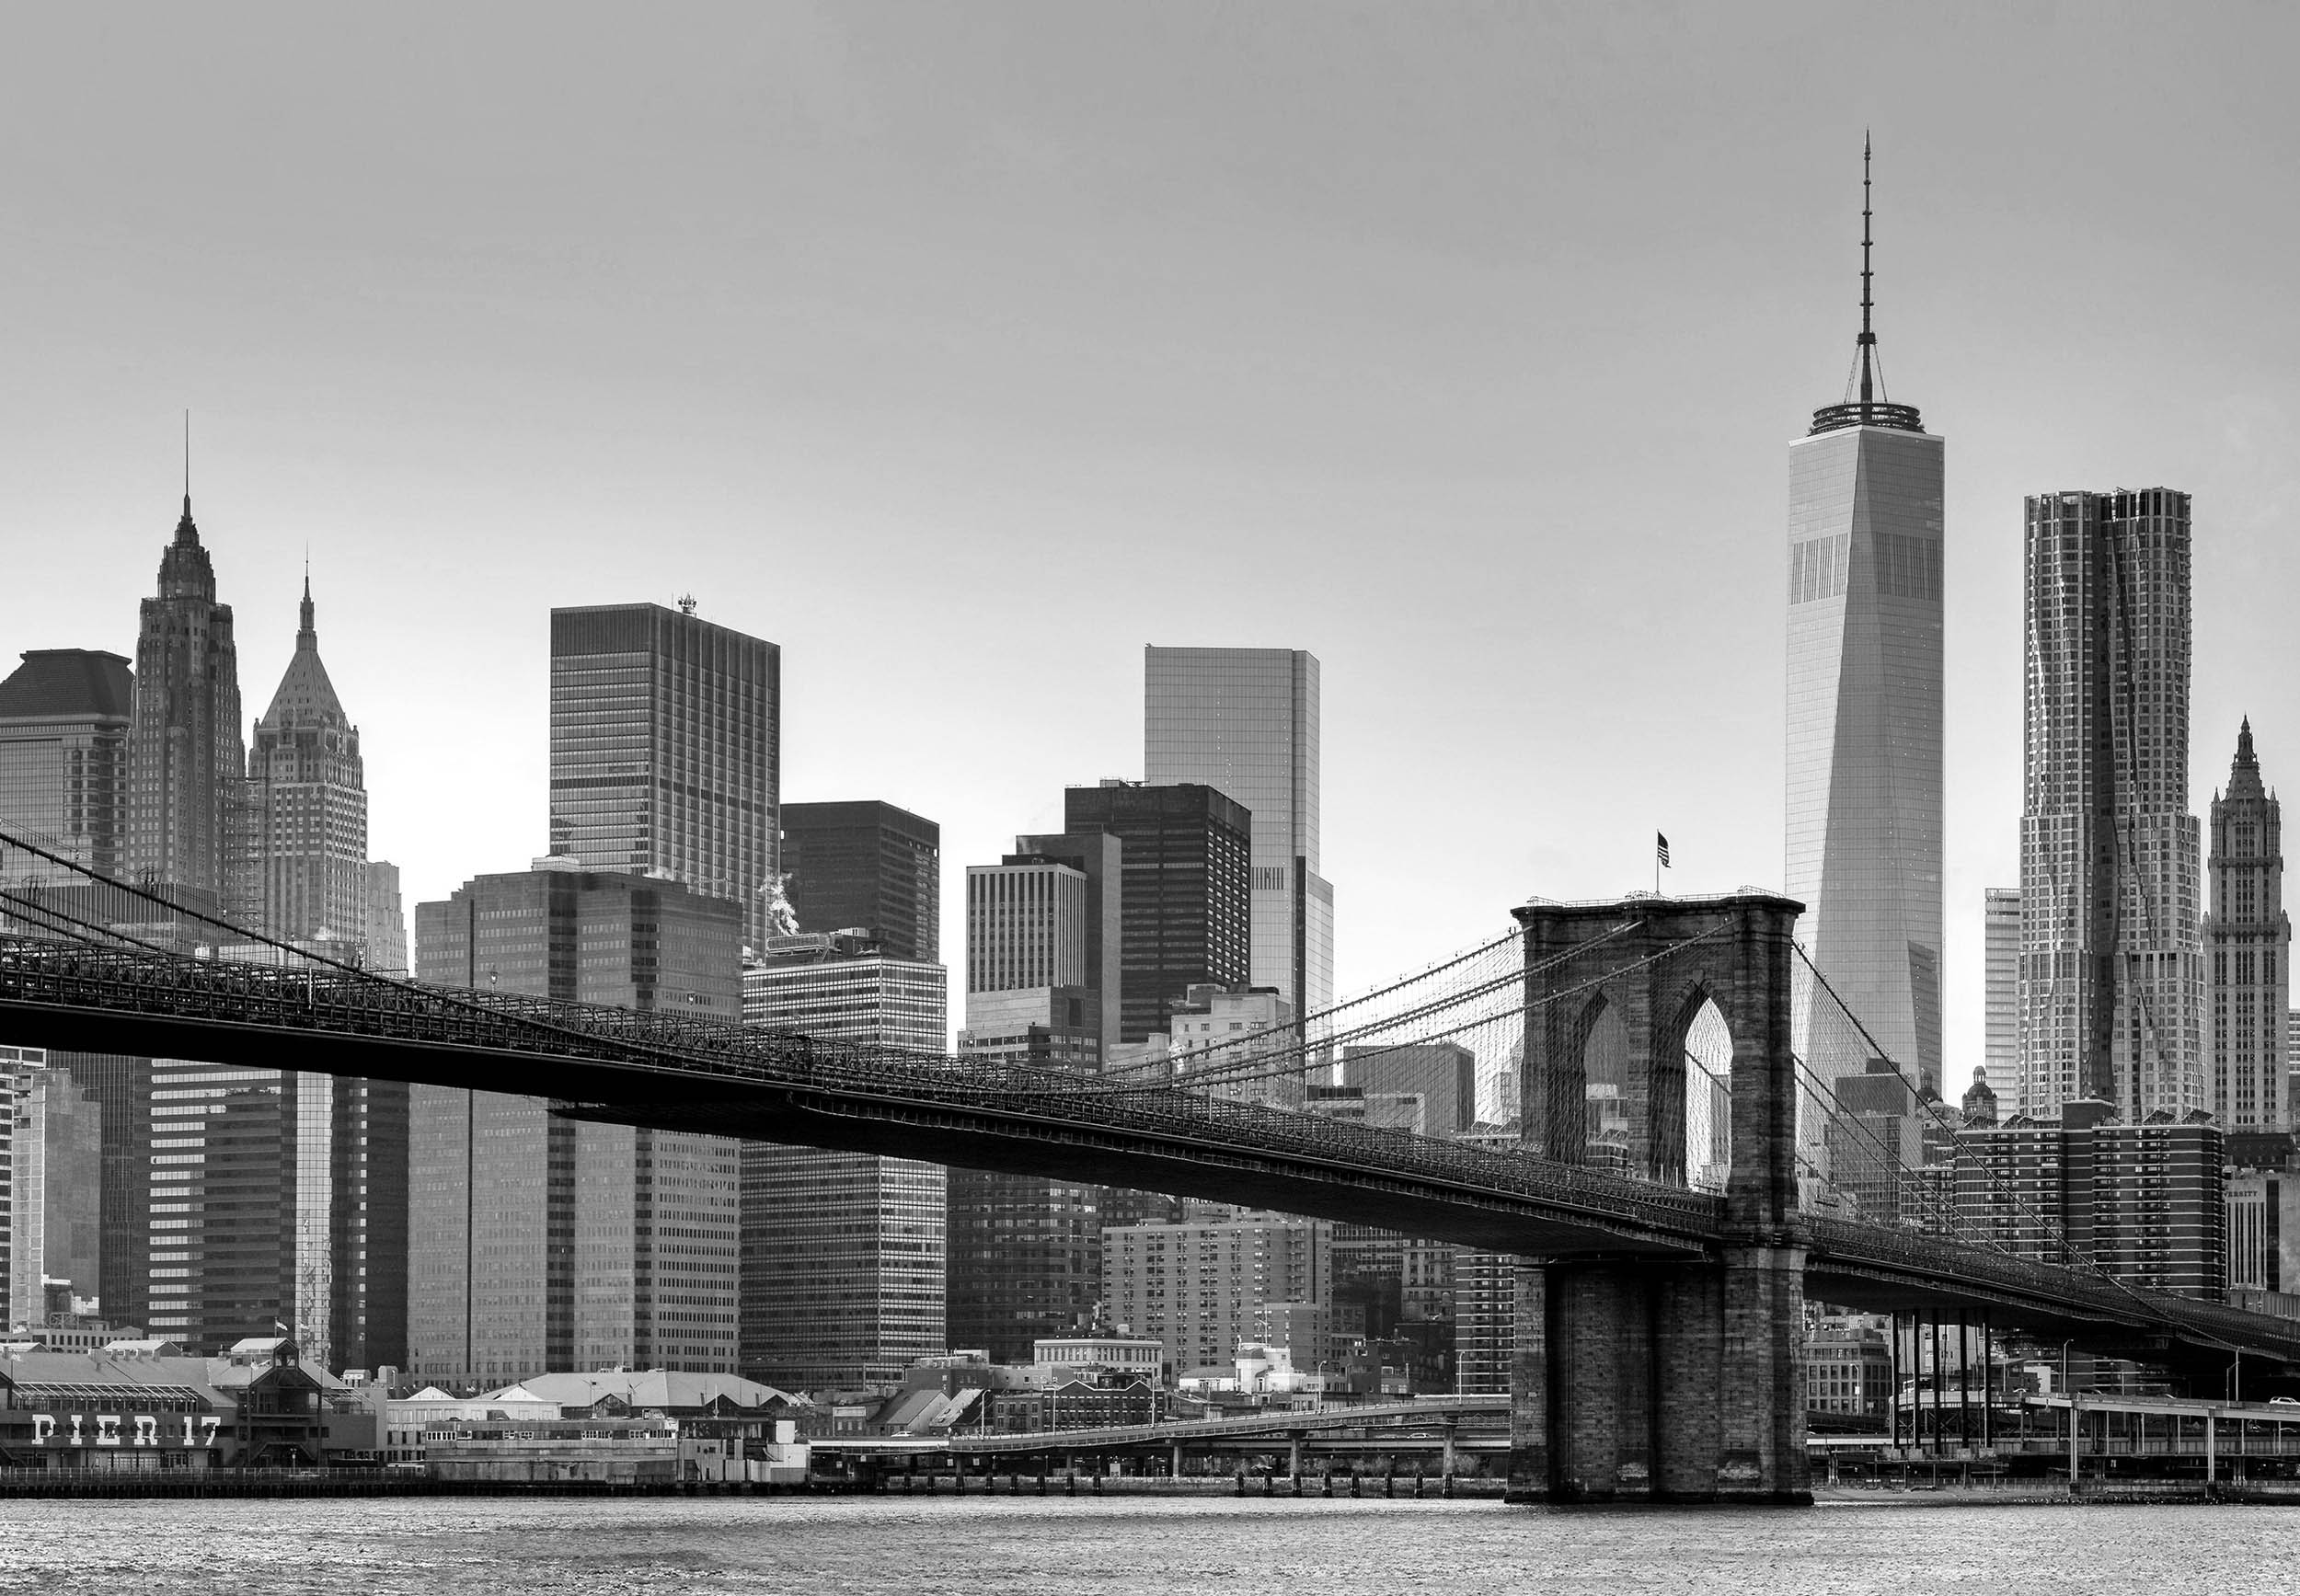 fototapete new york 366 x 254 cm brooklyn bridge. Black Bedroom Furniture Sets. Home Design Ideas